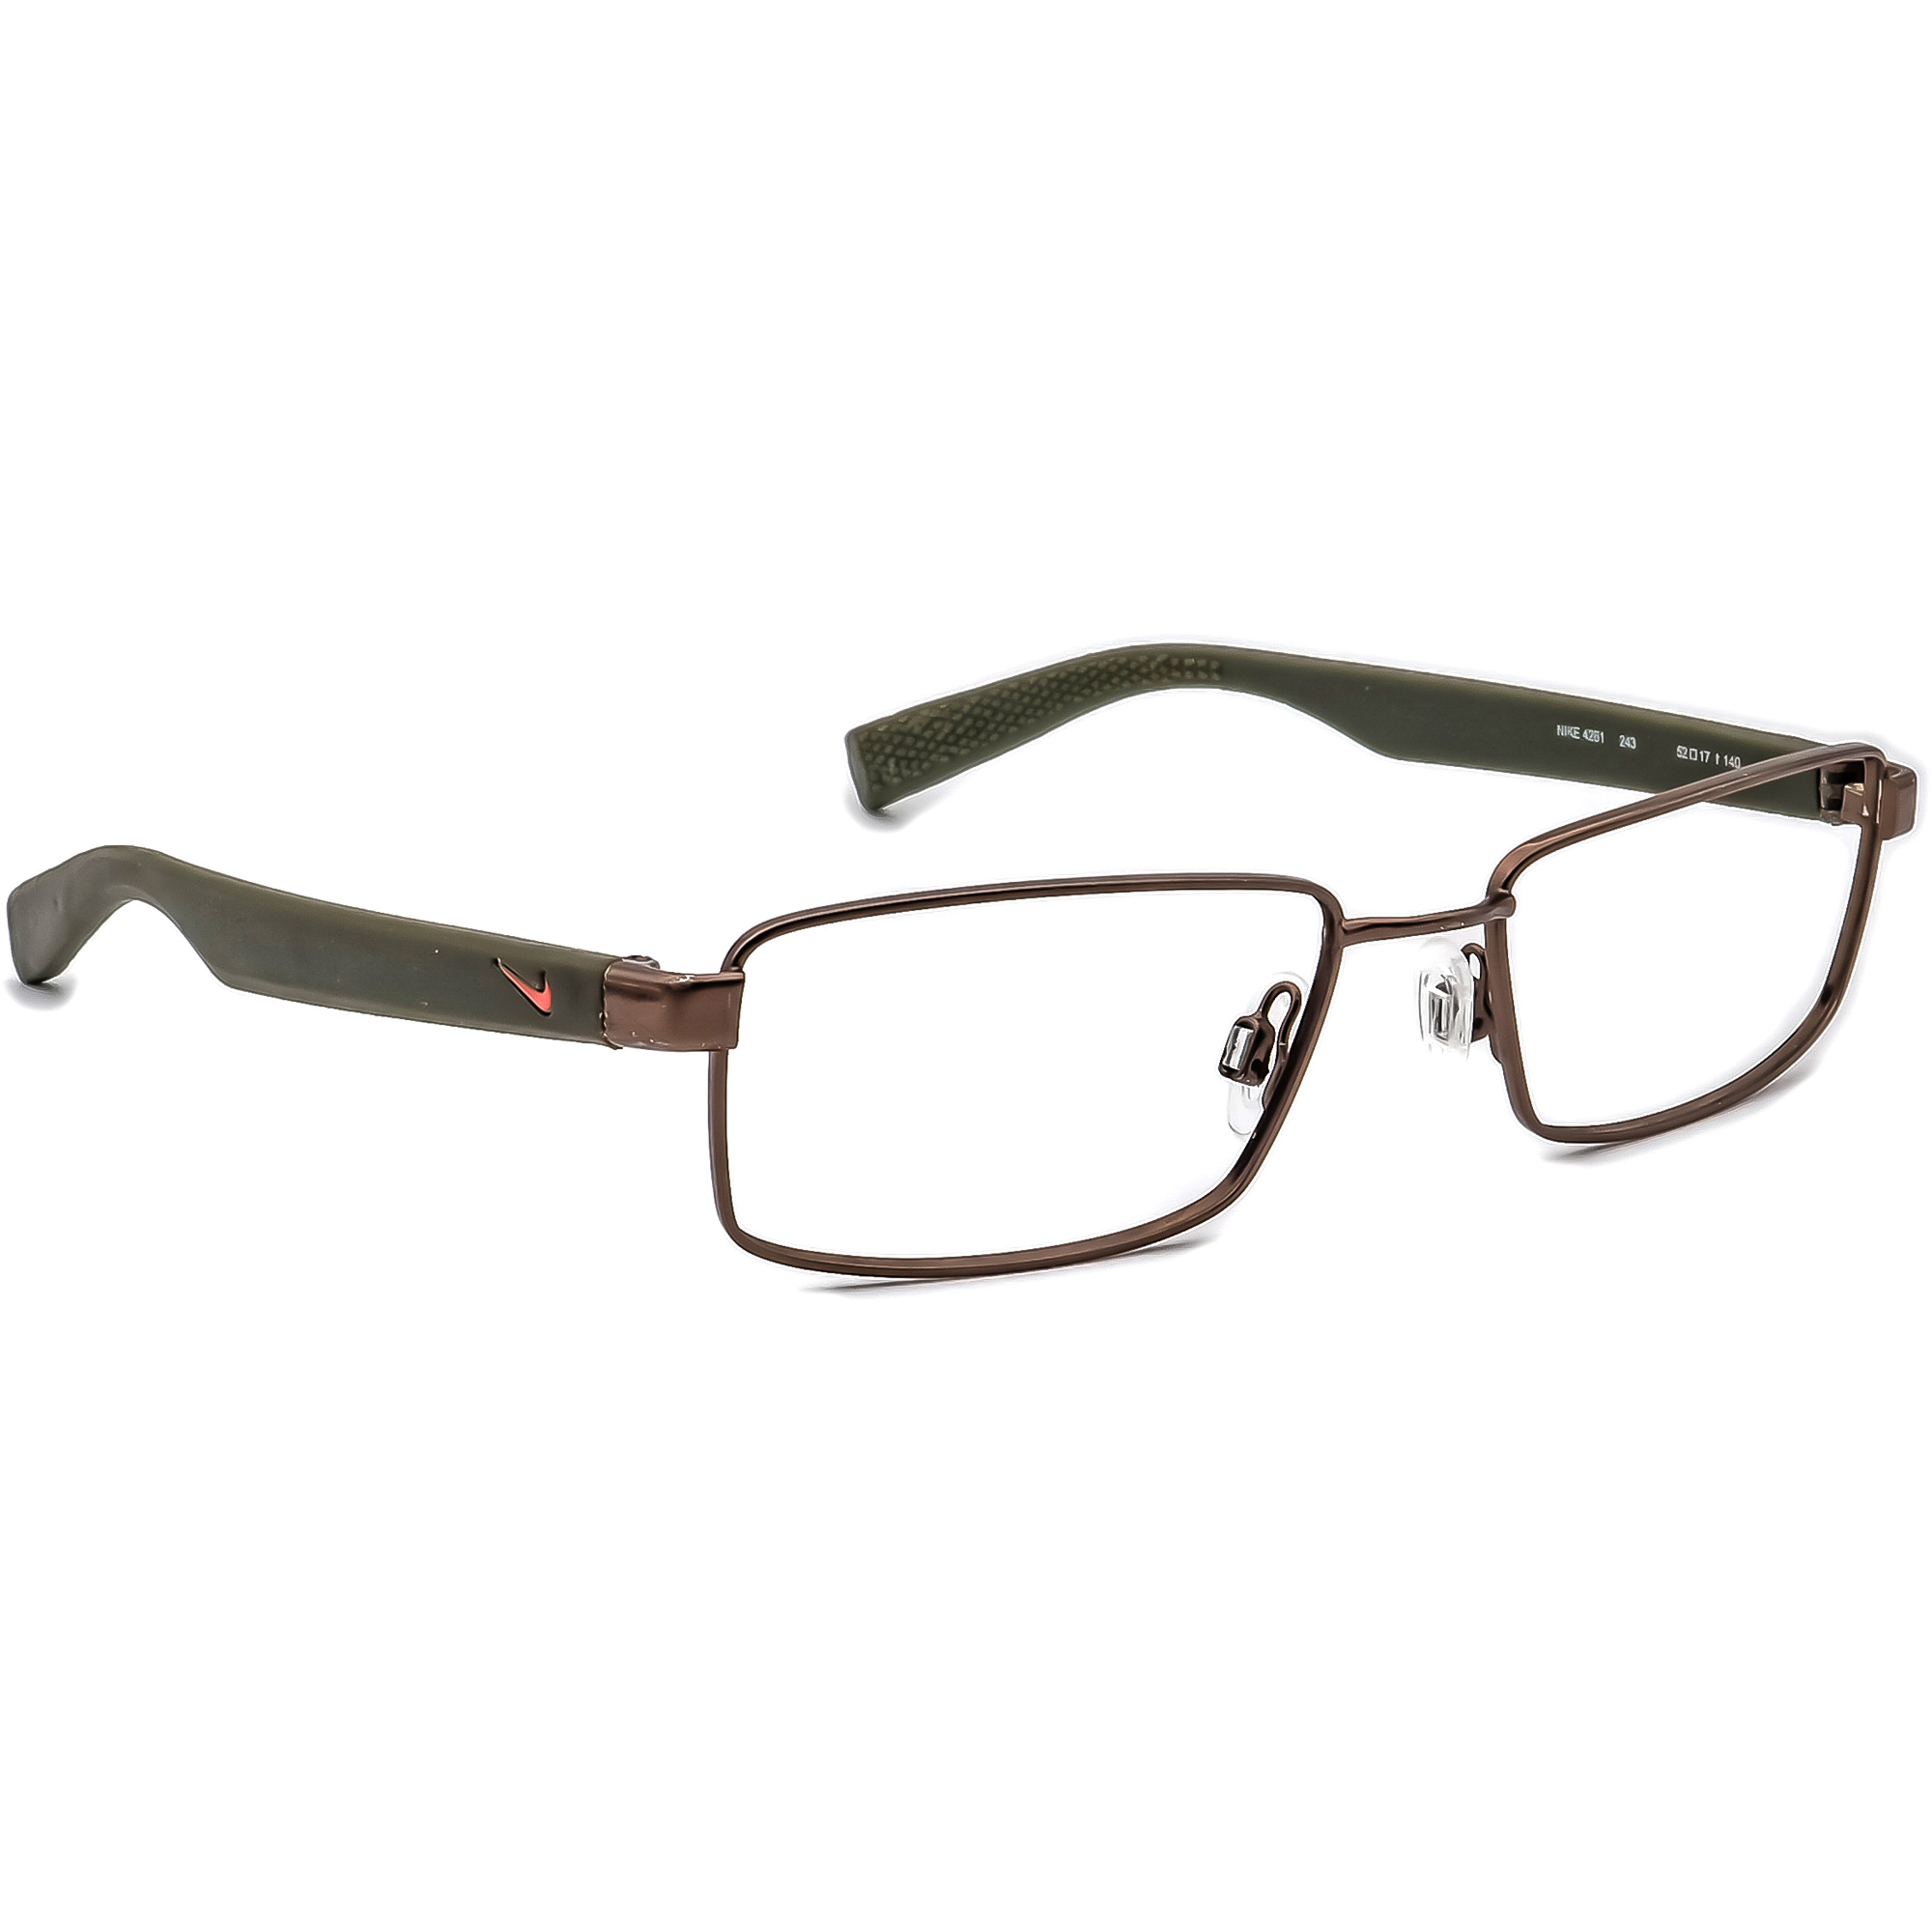 Nike 4261 243 Flexon Eyeglasses